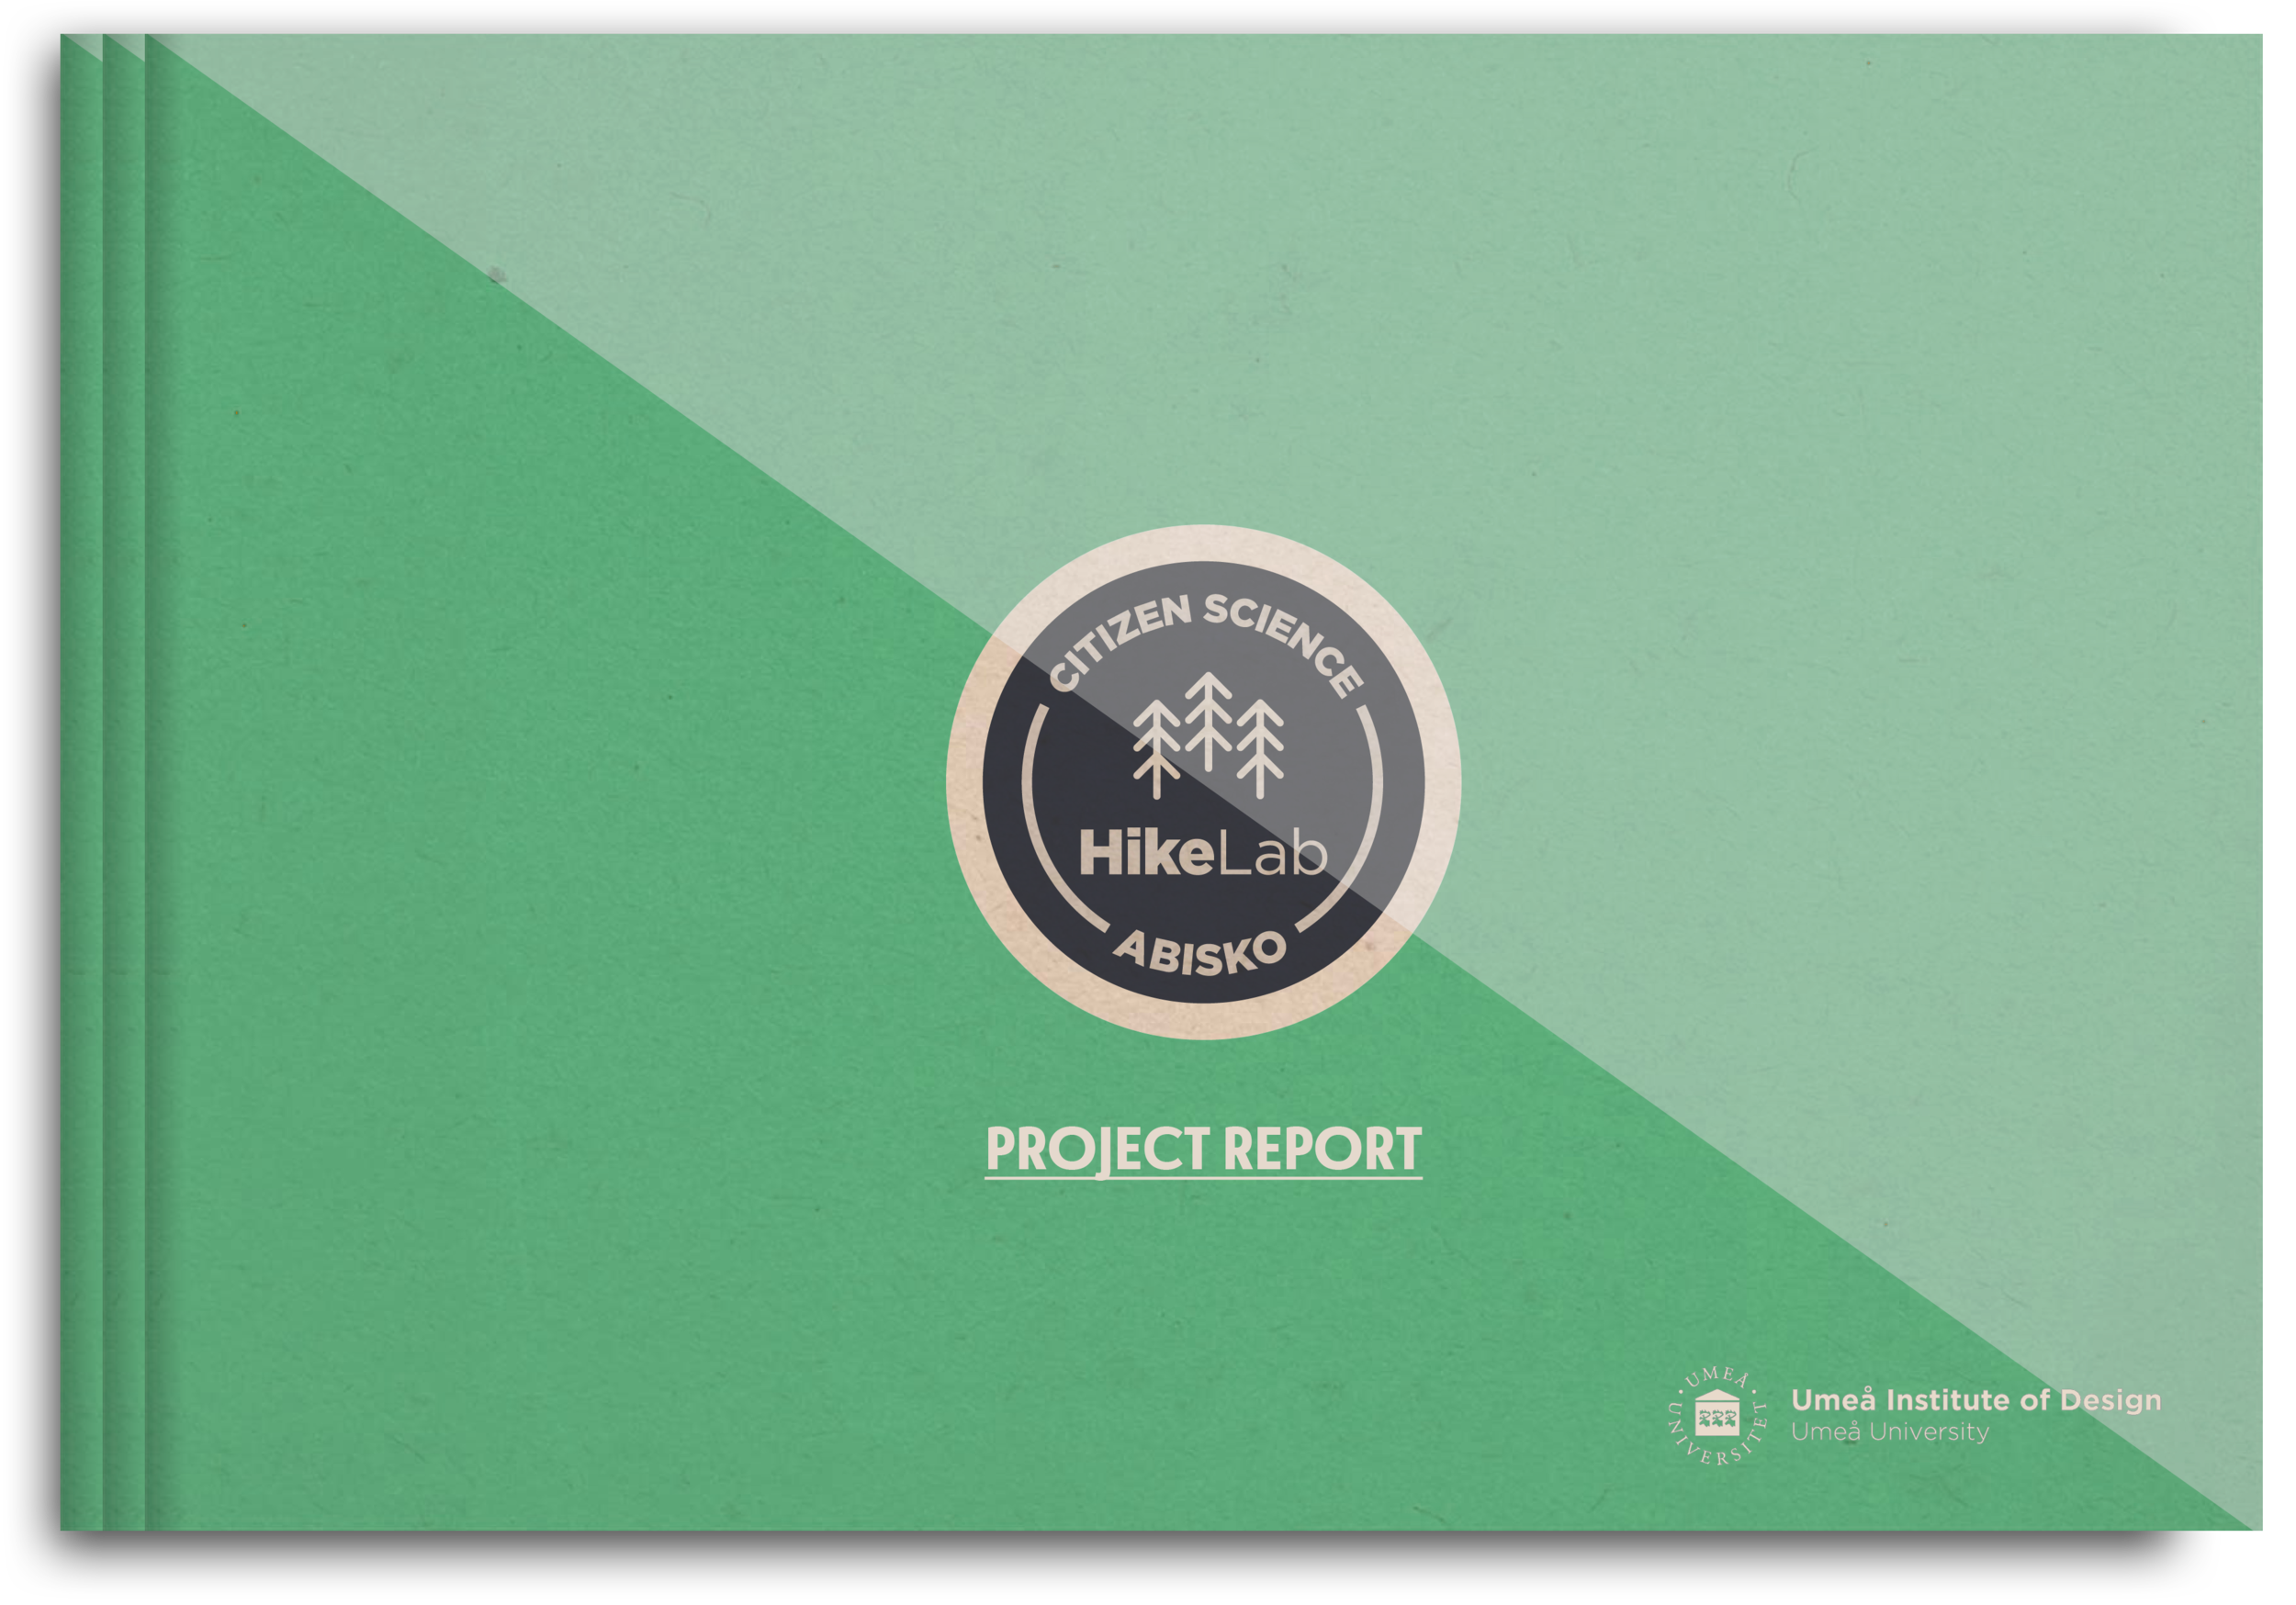 Download full Project Report